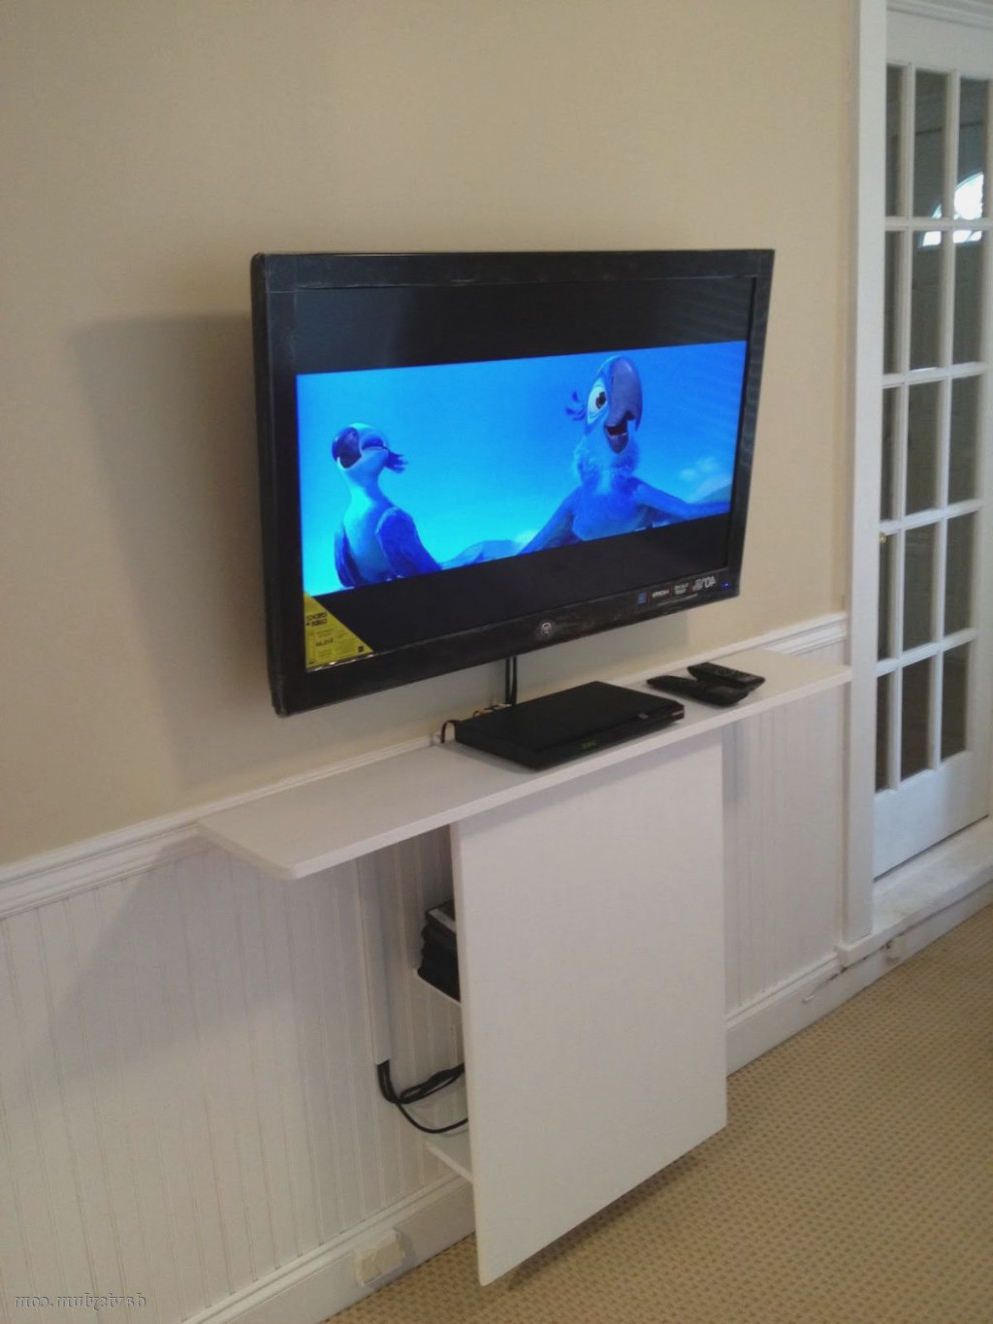 Small Tv Stands On Wheels With Regard To Most Up To Date Small Tv Stands On Wheels Excellent Tall Narrow Stand For Bedroom (Gallery 2 of 20)